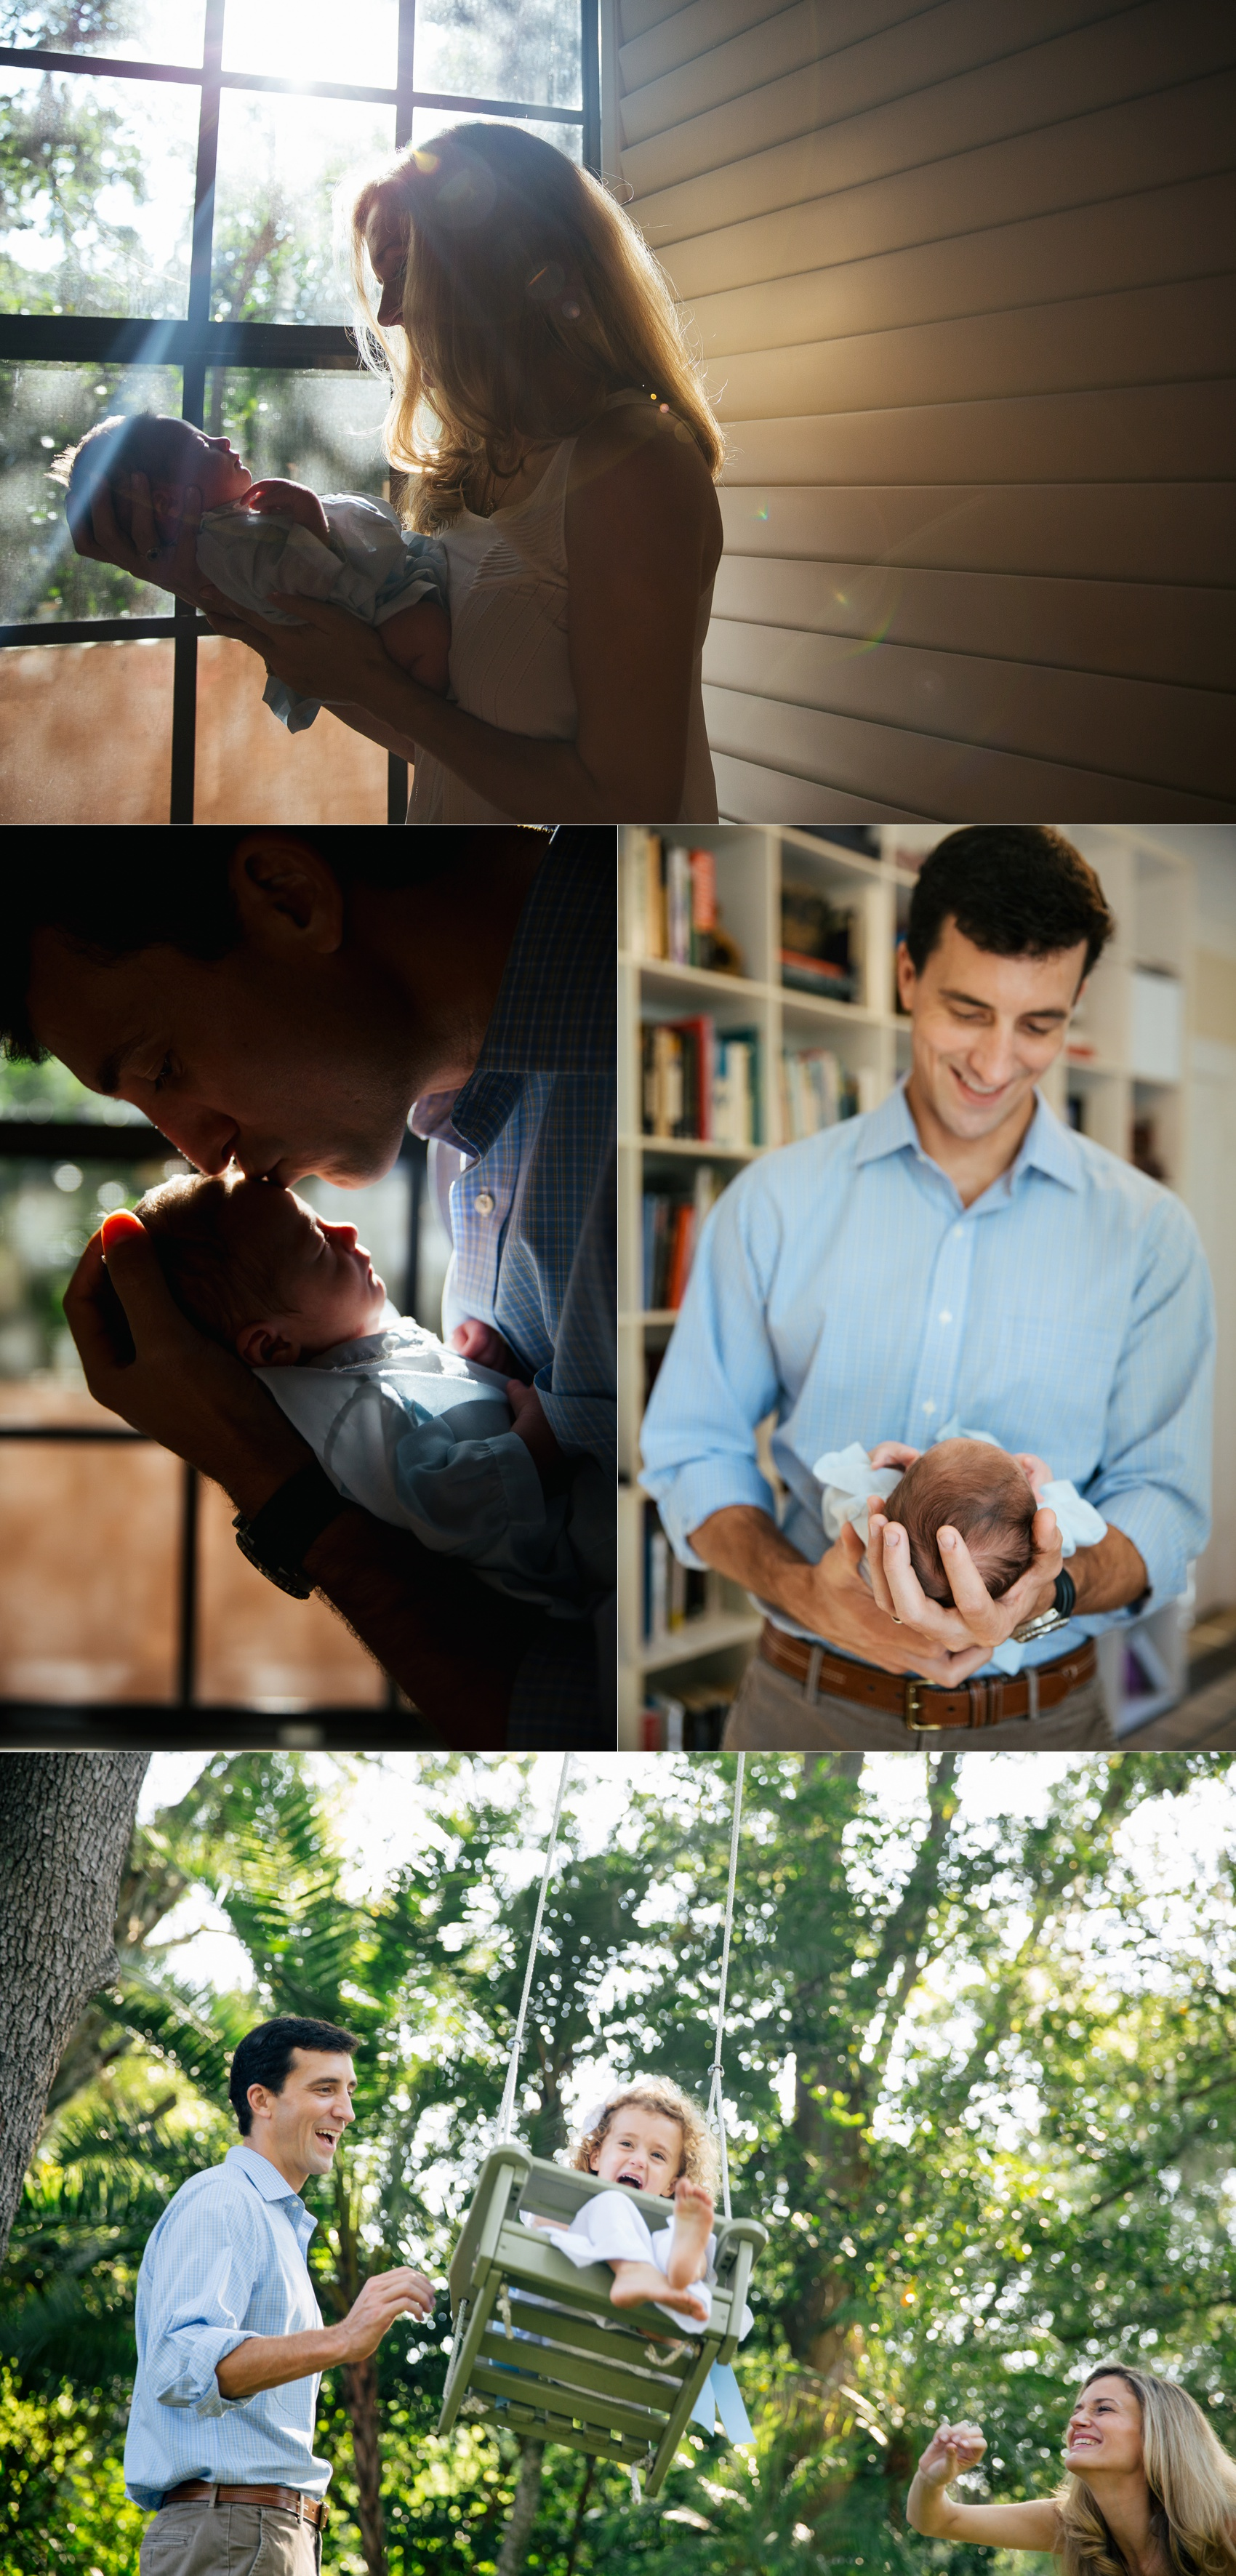 jake-and-katie-tampa-bay-family-portraits-13